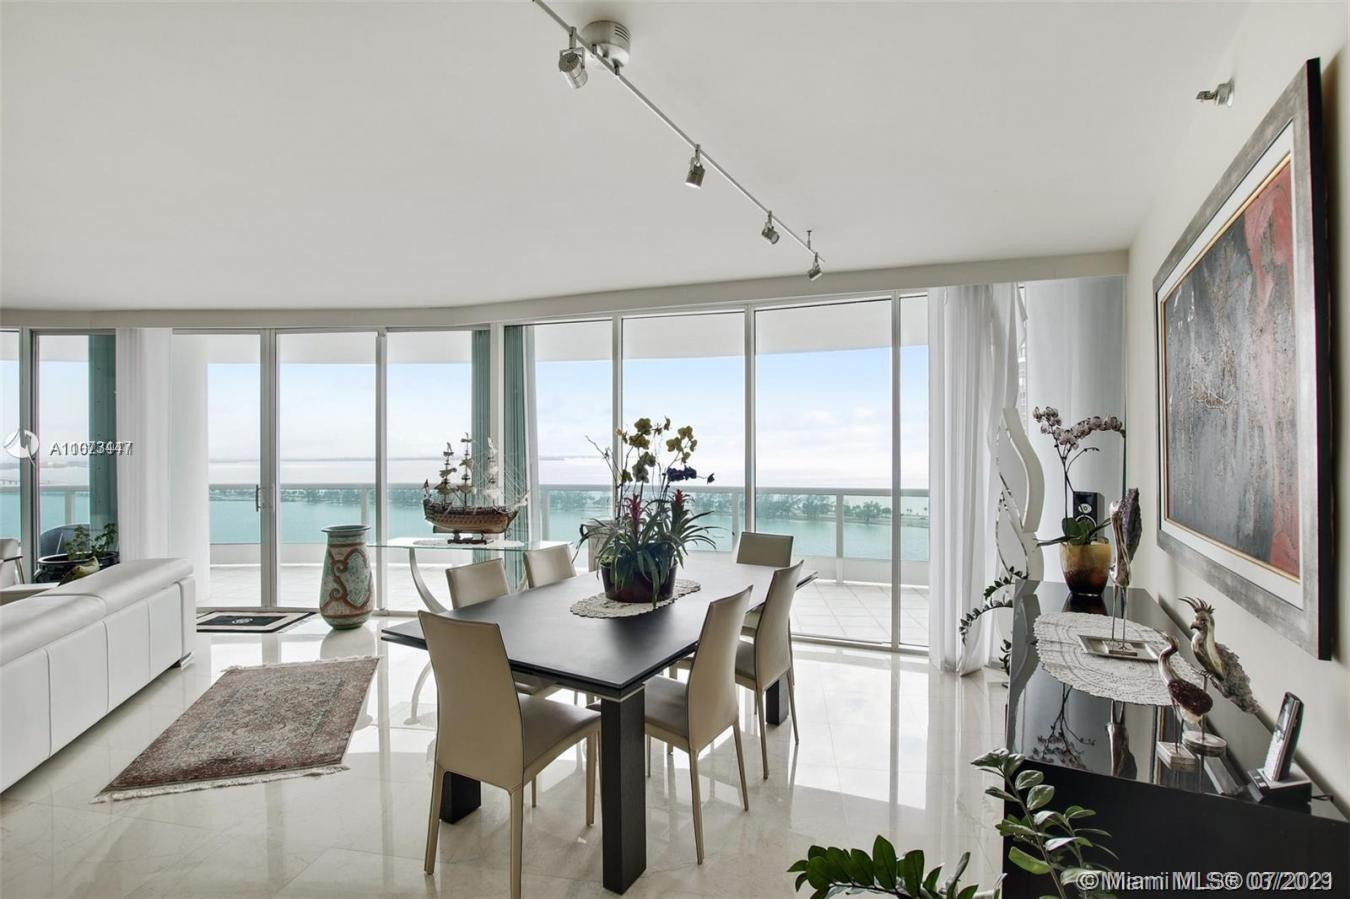 Enter through a private elevator to a spectacular 3 bedroom, 3 1/2 bath, 2,825 s/f home with hundred